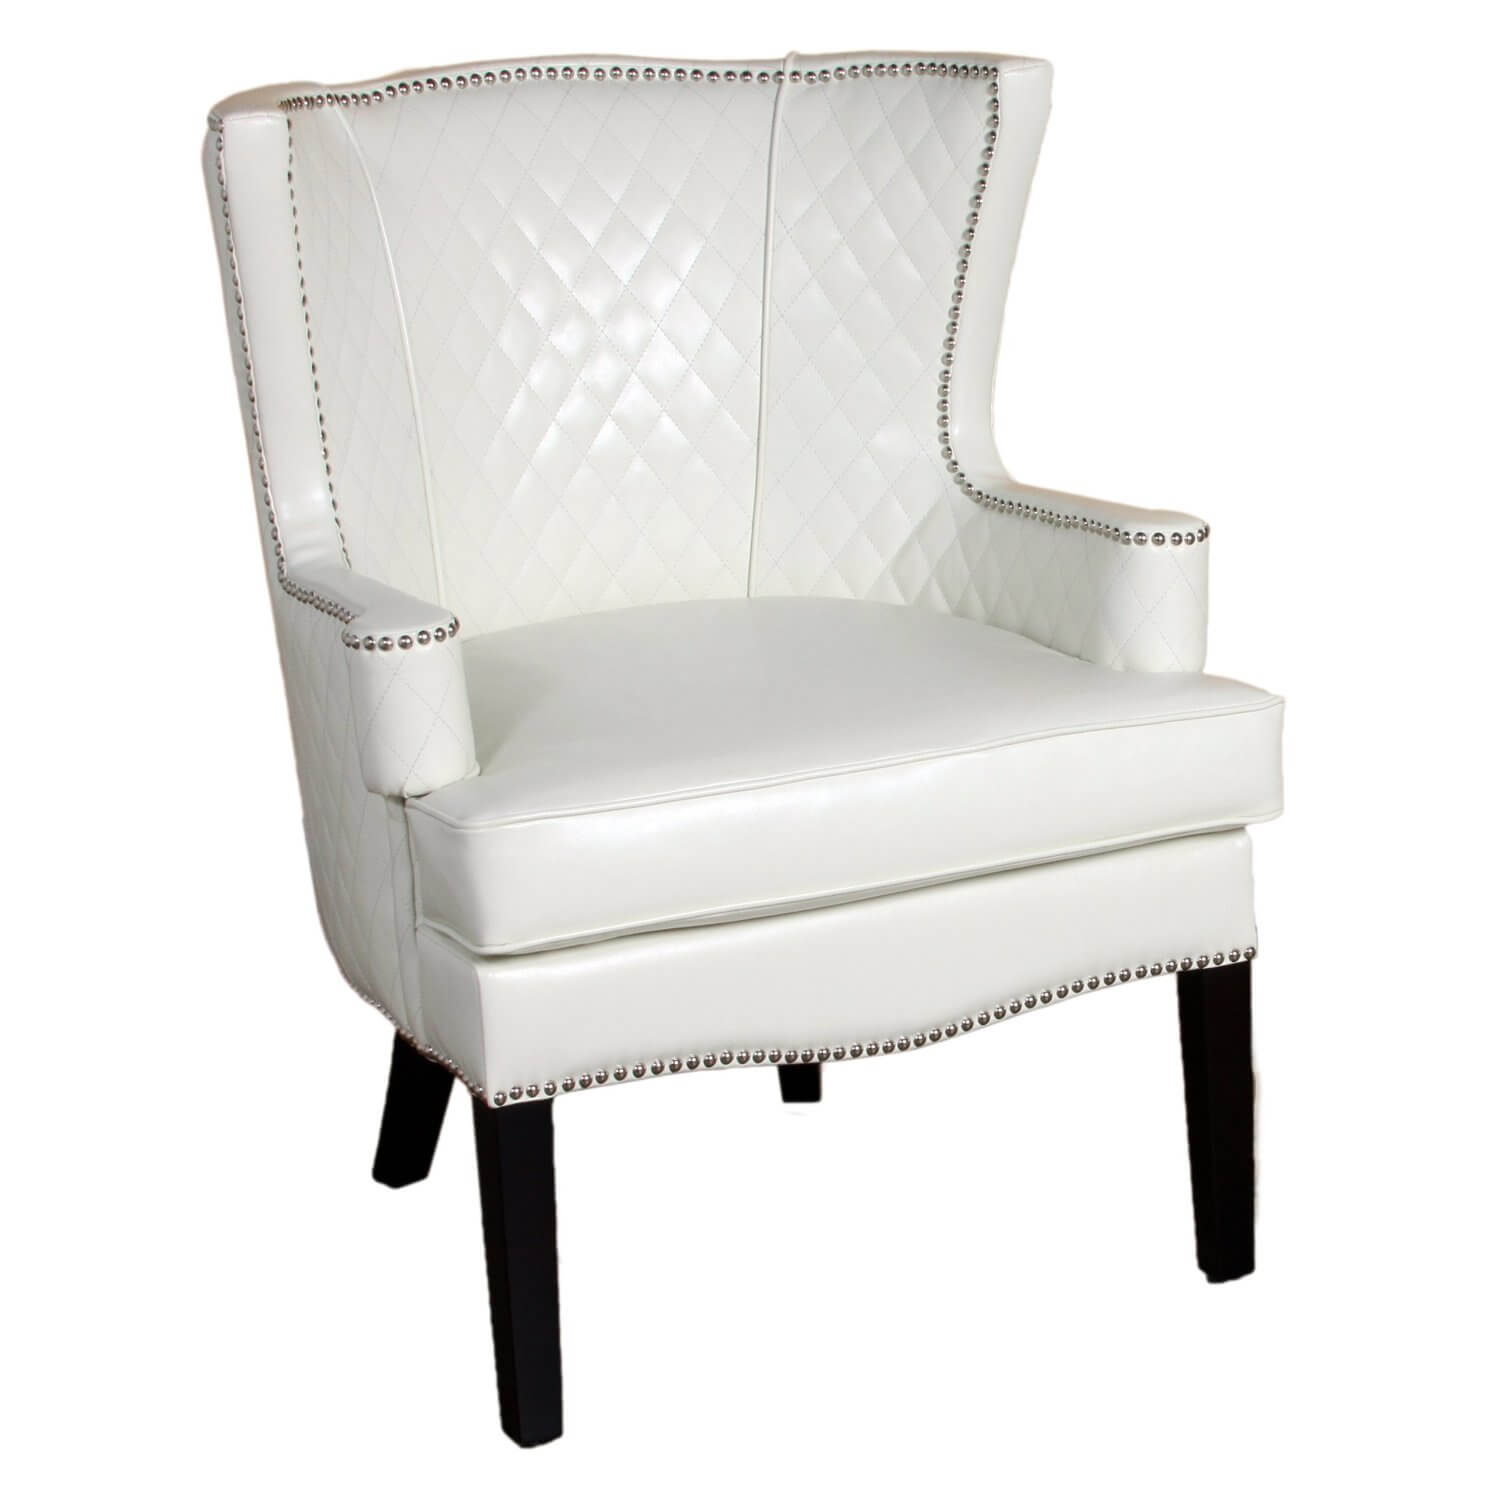 white leather chairs for living room table argos 37 modern accent the another ivory toned chair this quilted seat by best features wide seating with